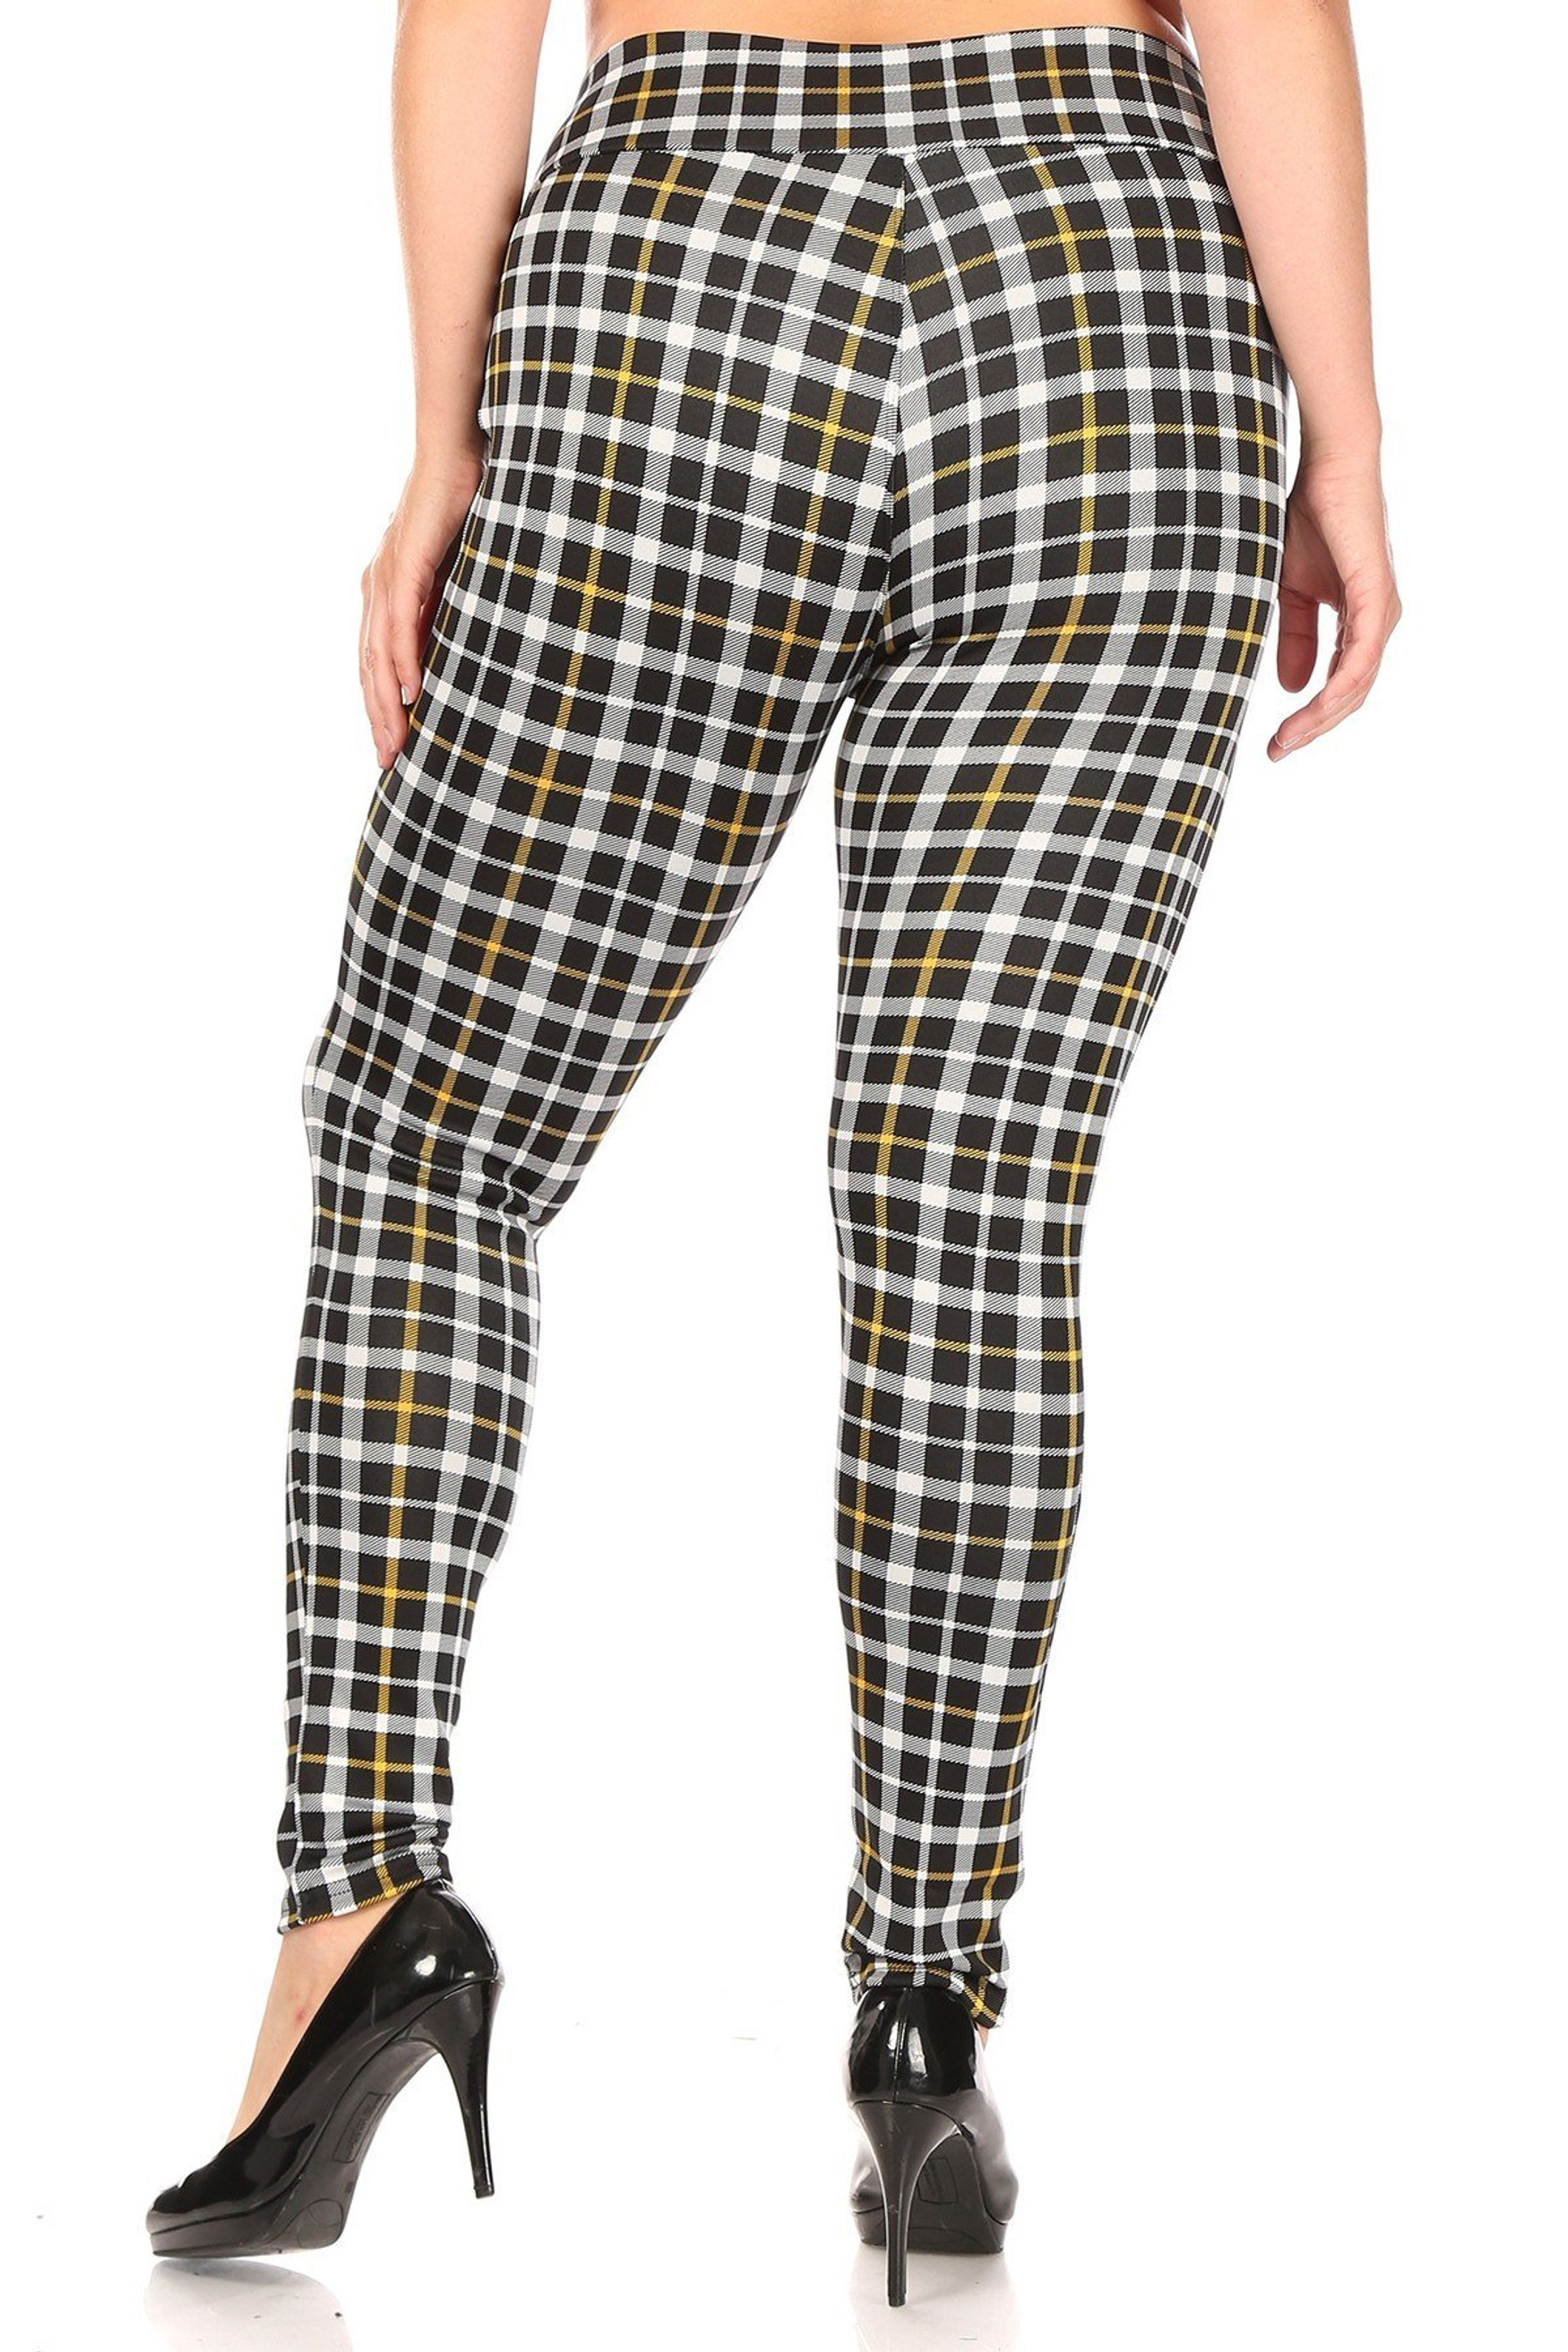 Mustard Accent Plaid High Waisted Plus Size Treggings with Zipper Pockets